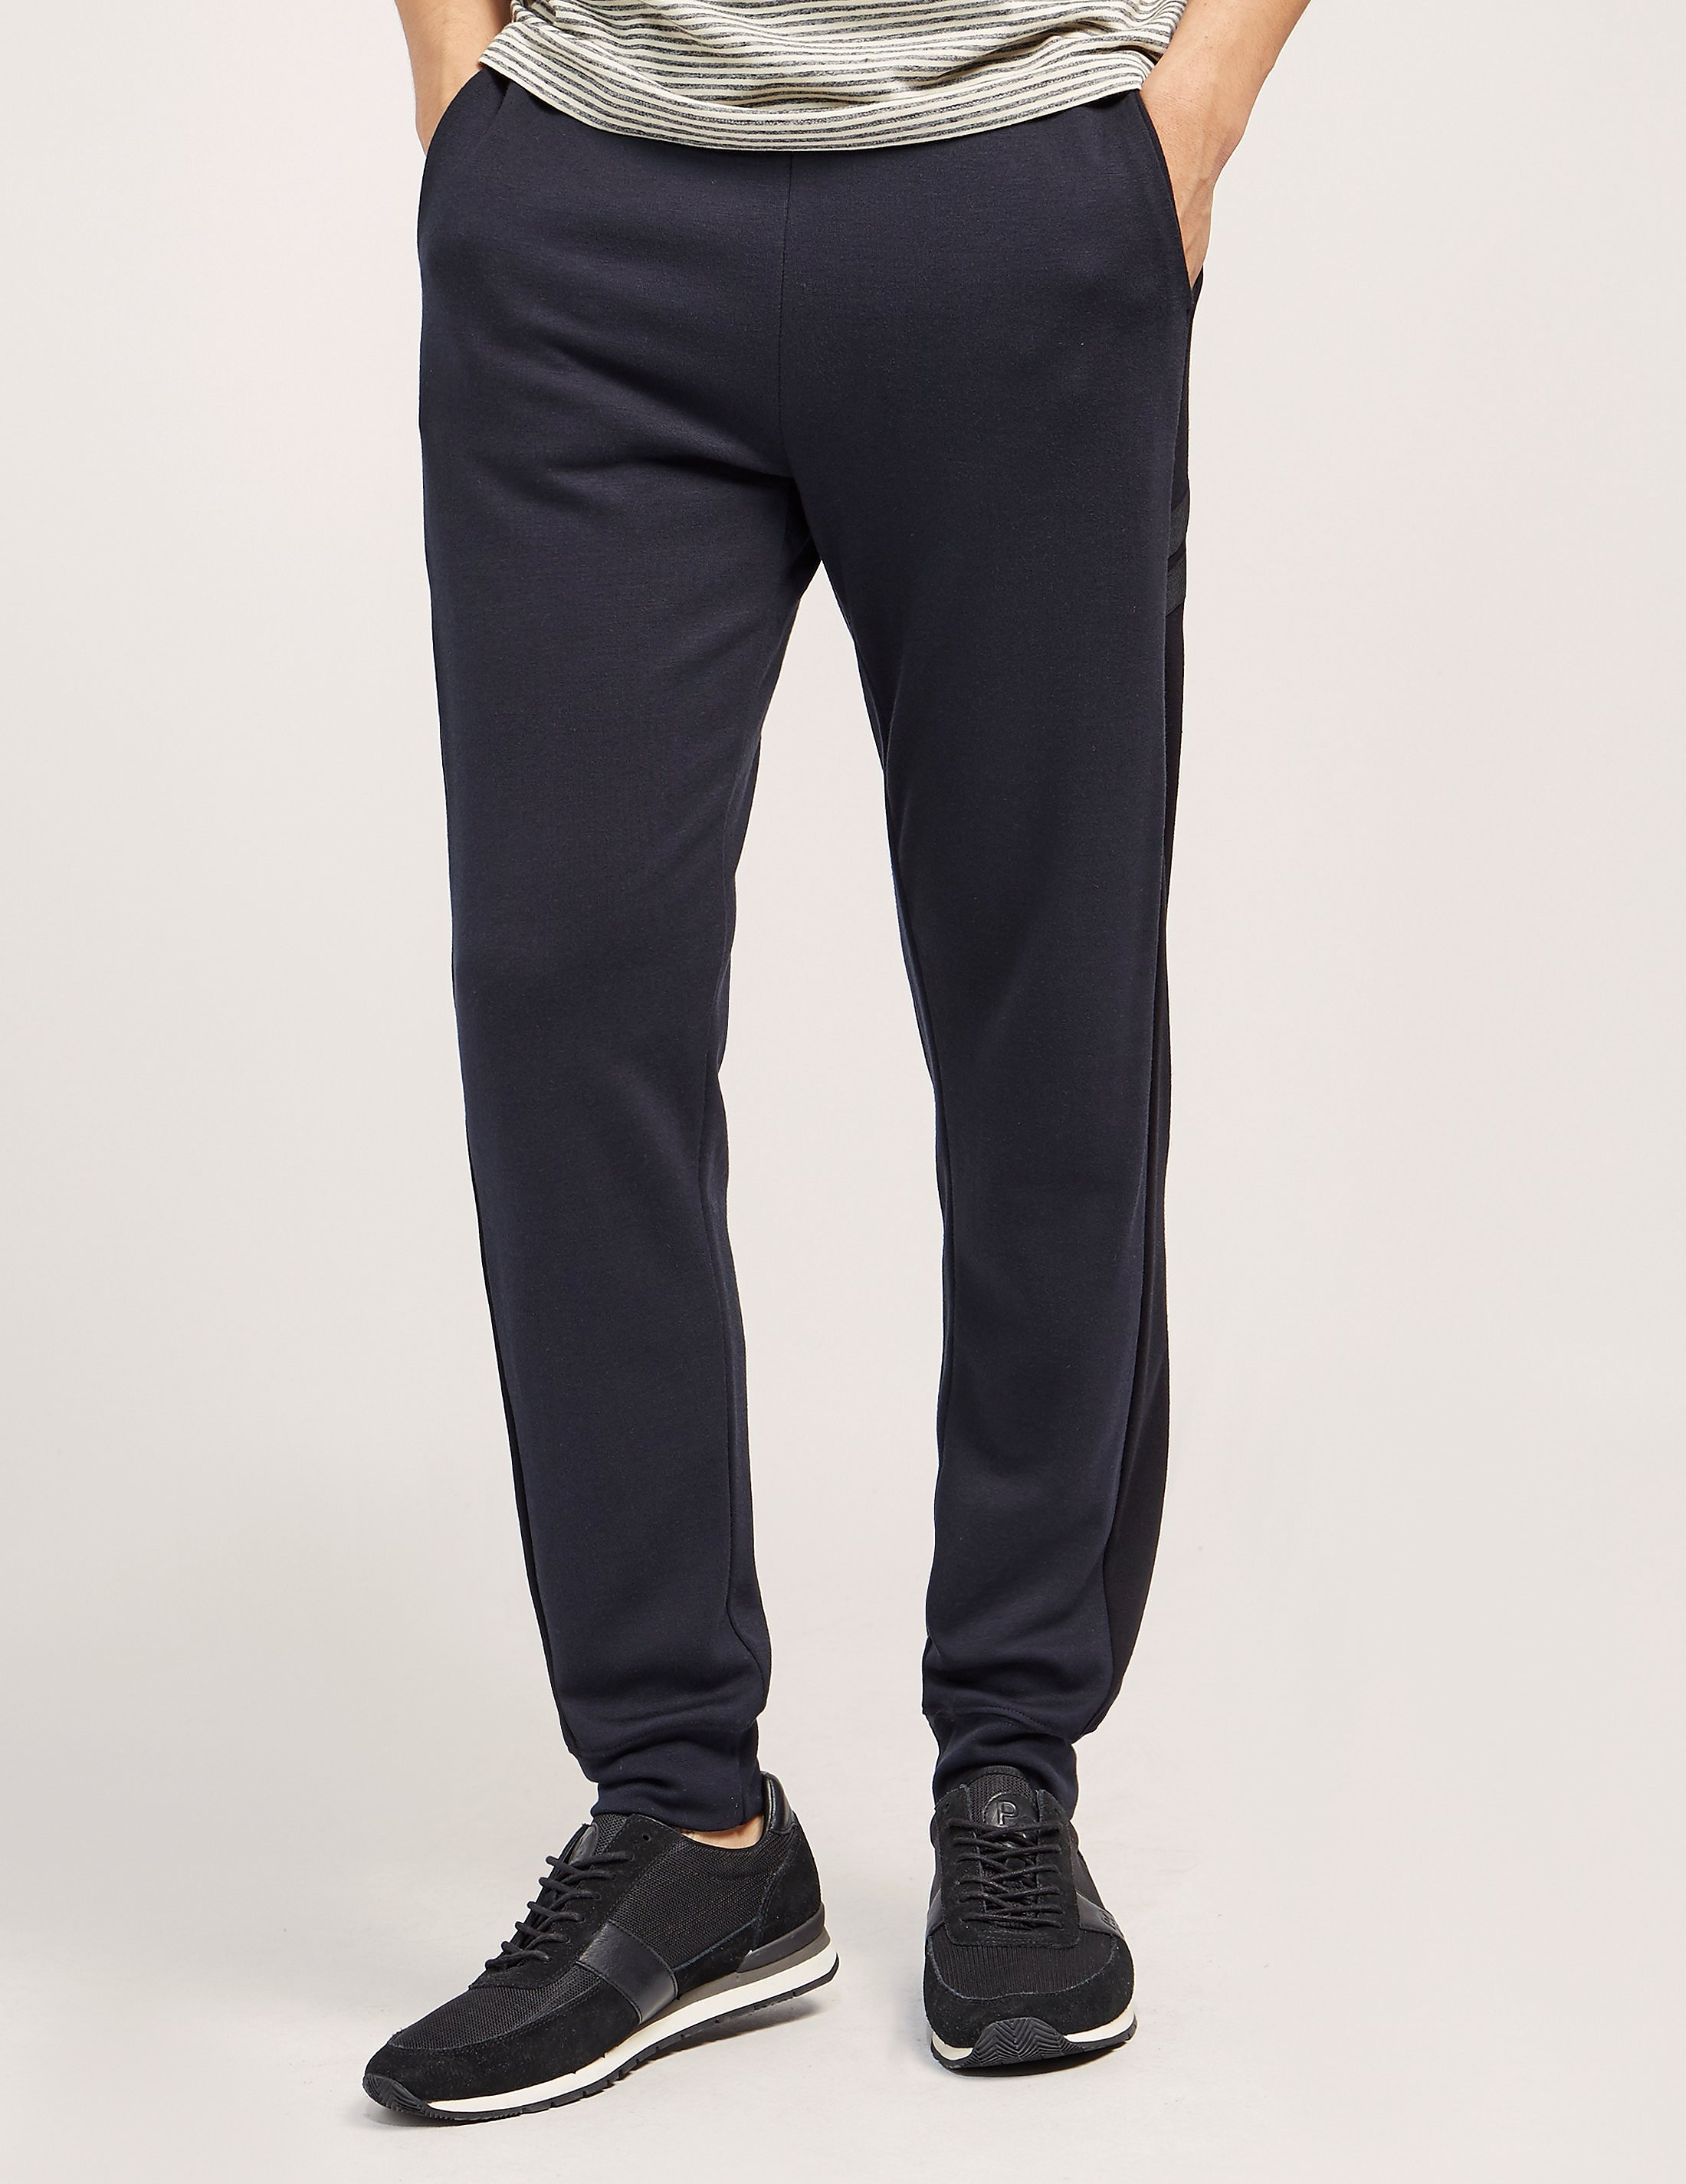 Paul Smith Contrast Track Pants